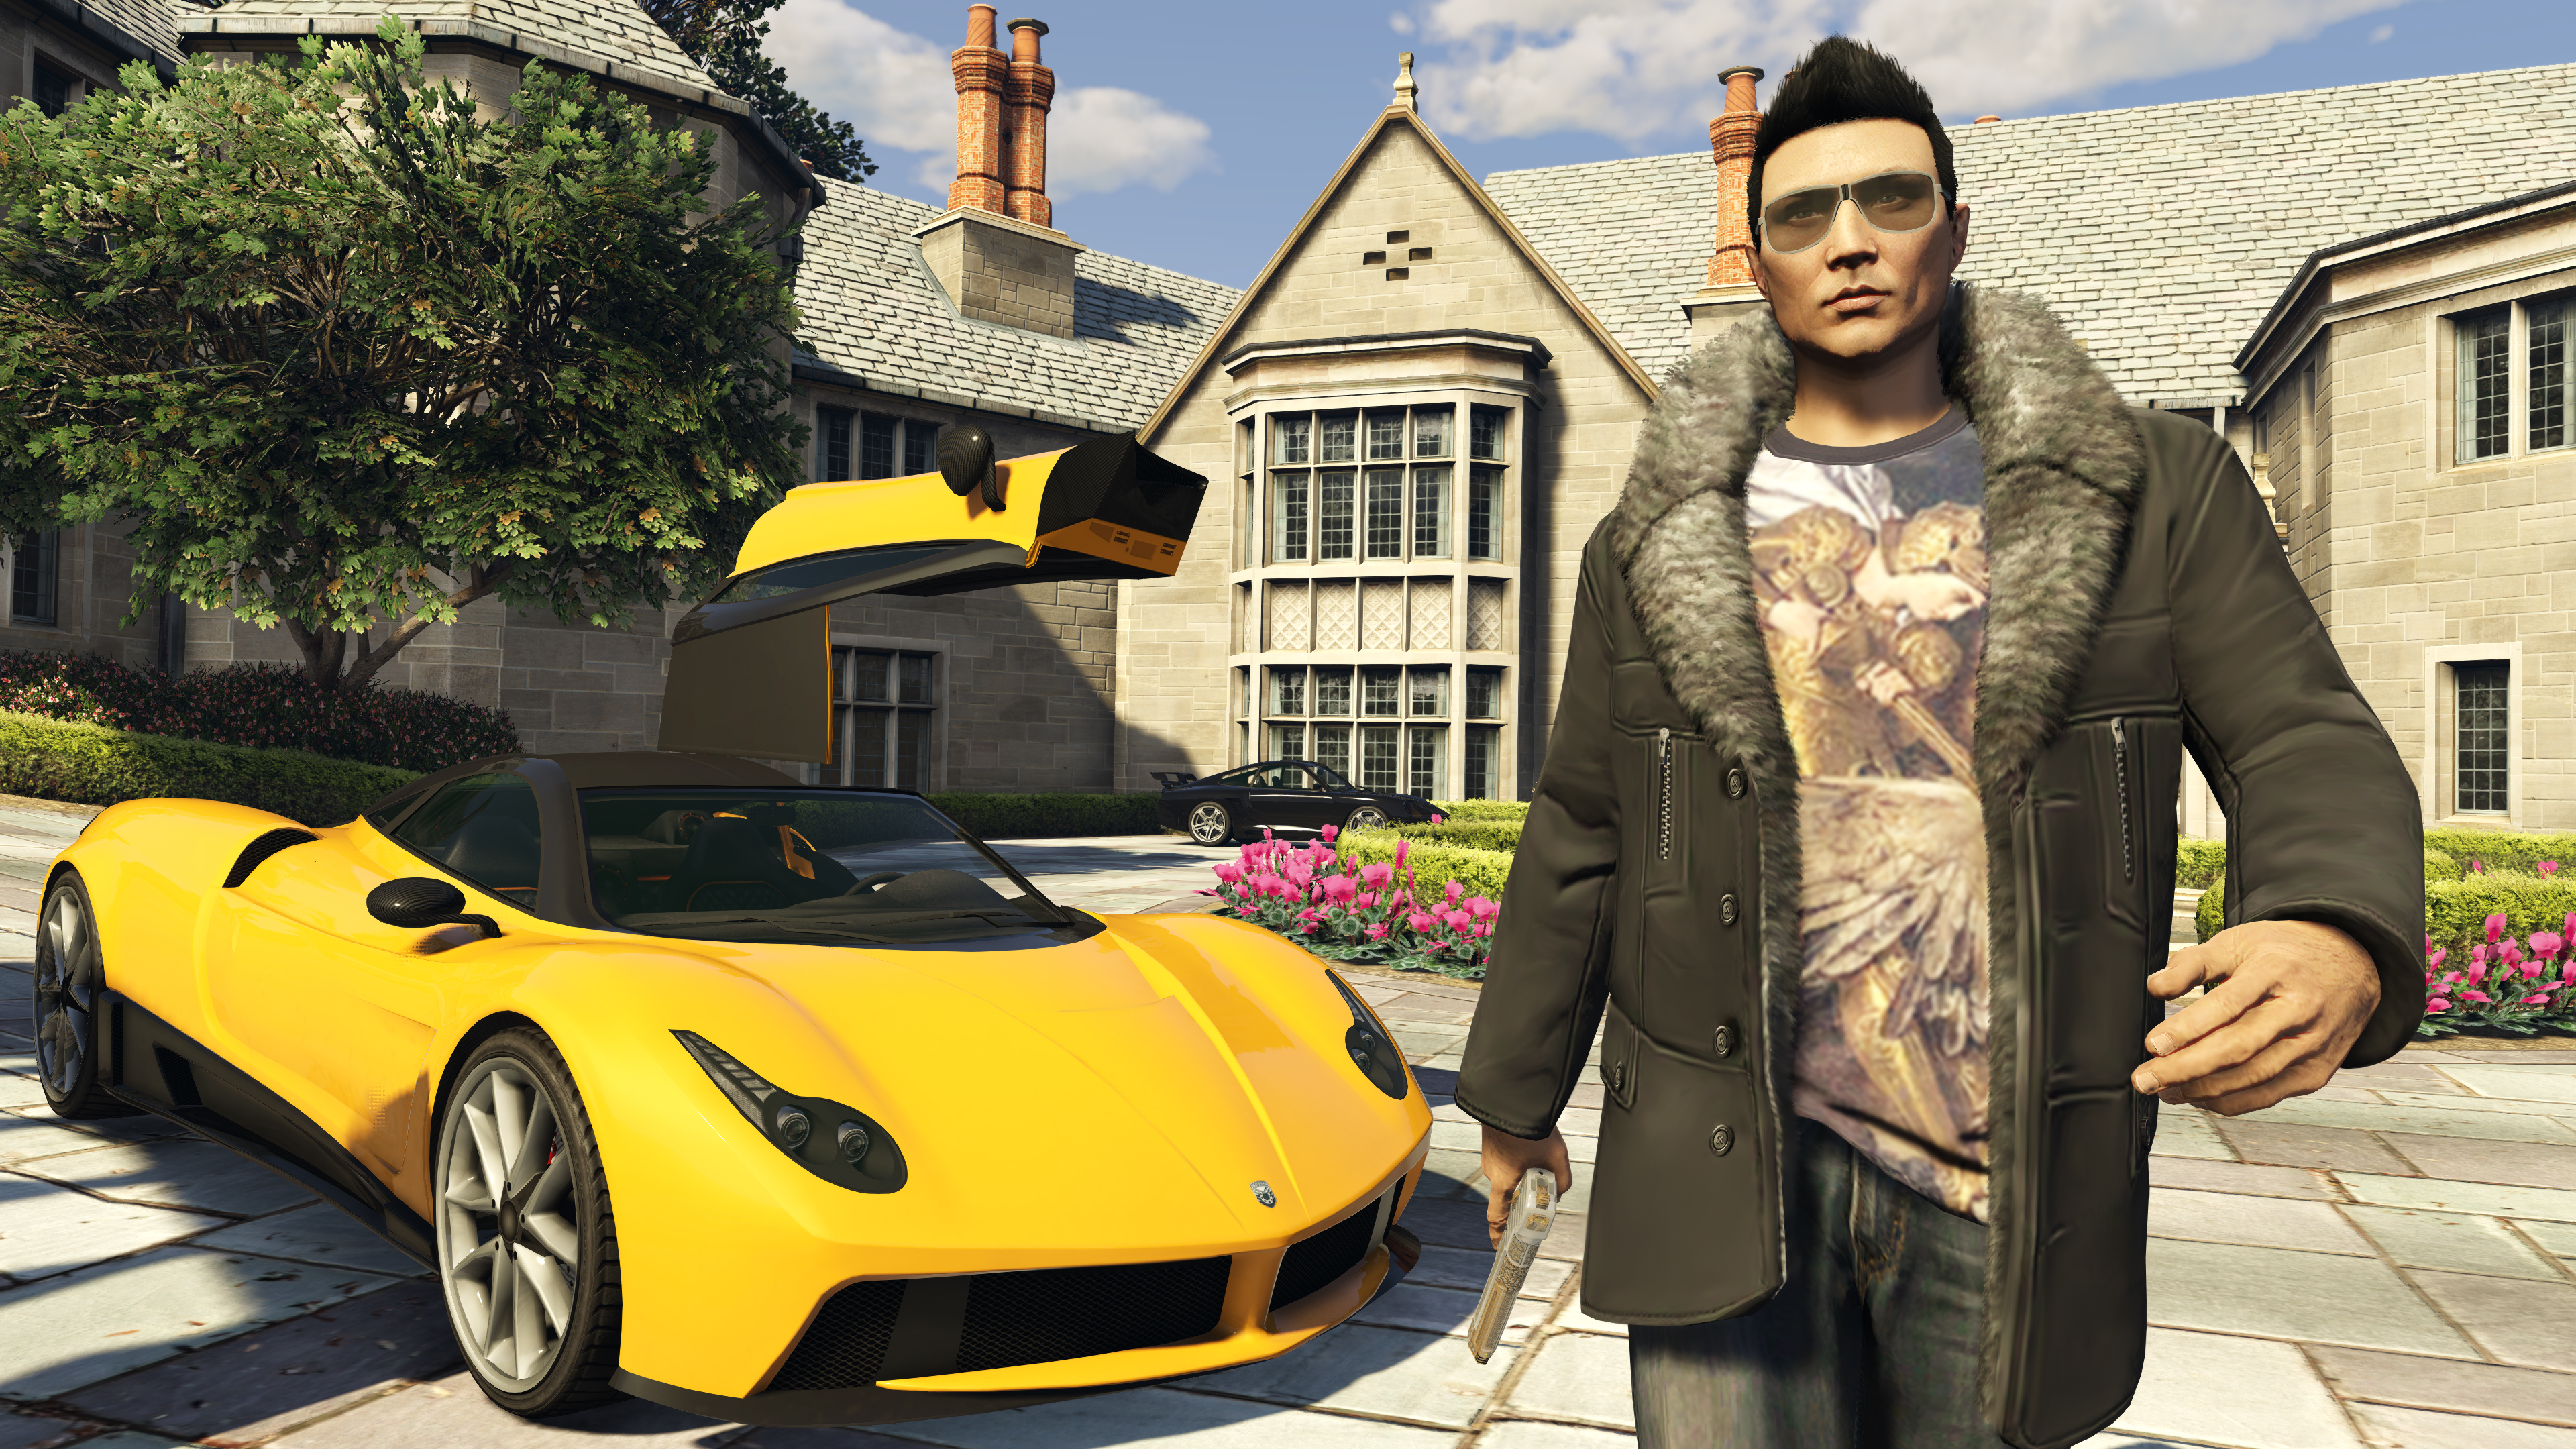 New Update for Grand Theft Auto Online Coming Next Week - Rockstar Games